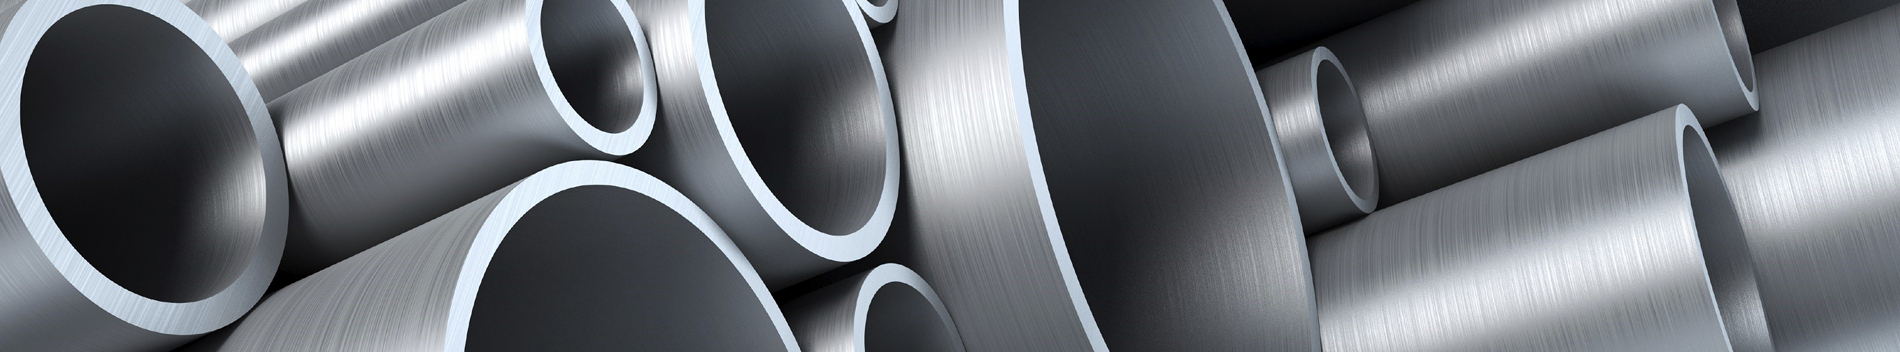 Suppliers of Nickel Alloys, Titanium and Stainless Steels